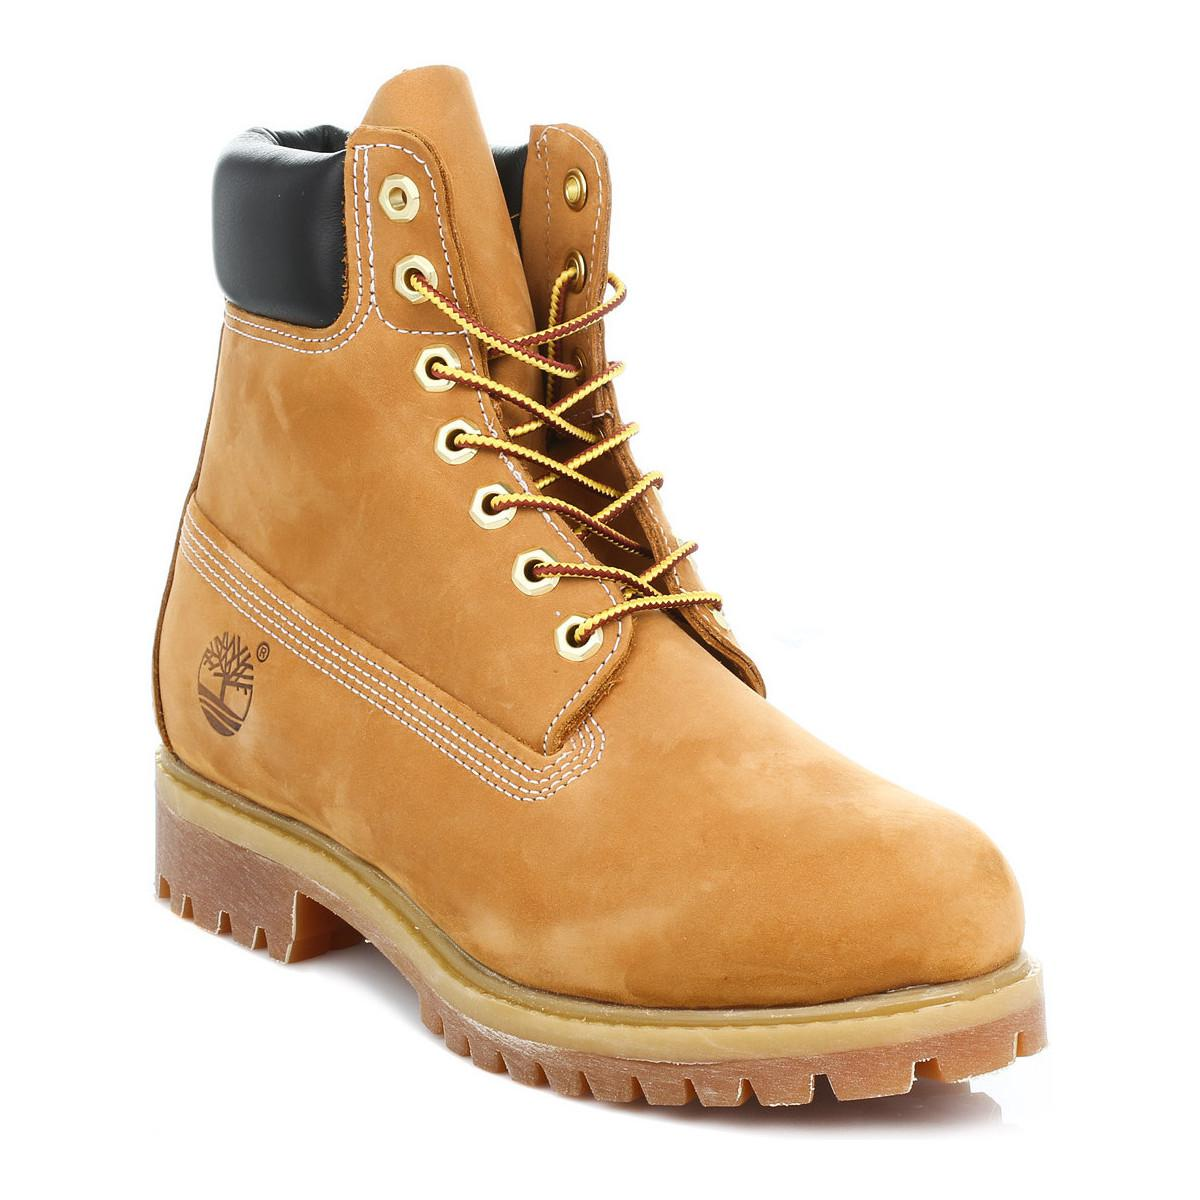 021d40d38ad9 Timberland Mens Wheat Premium Classic 6 Inch Nubuck Leather Ankle ...